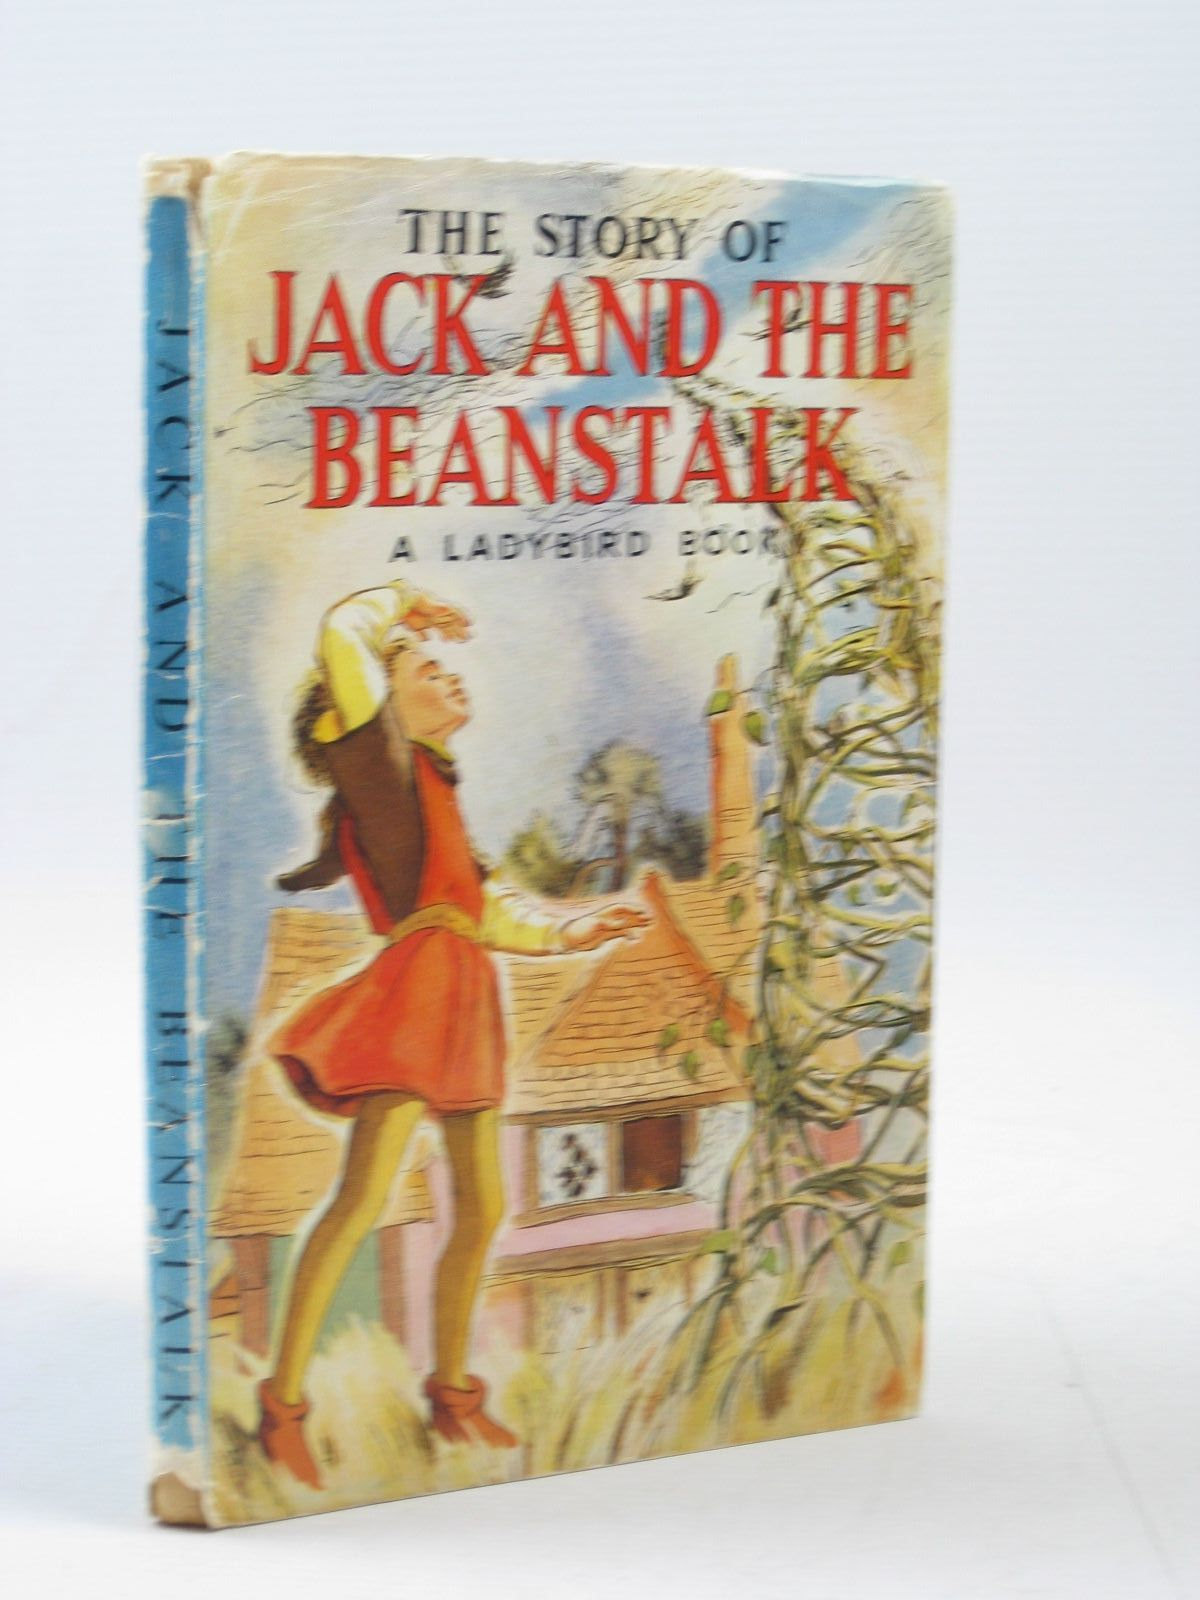 Photo of THE STORY OF JACK AND THE BEANSTALK written by Levy, Muriel illustrated by Murrell, Ruth published by Wills & Hepworth Ltd. (STOCK CODE: 1403368)  for sale by Stella & Rose's Books